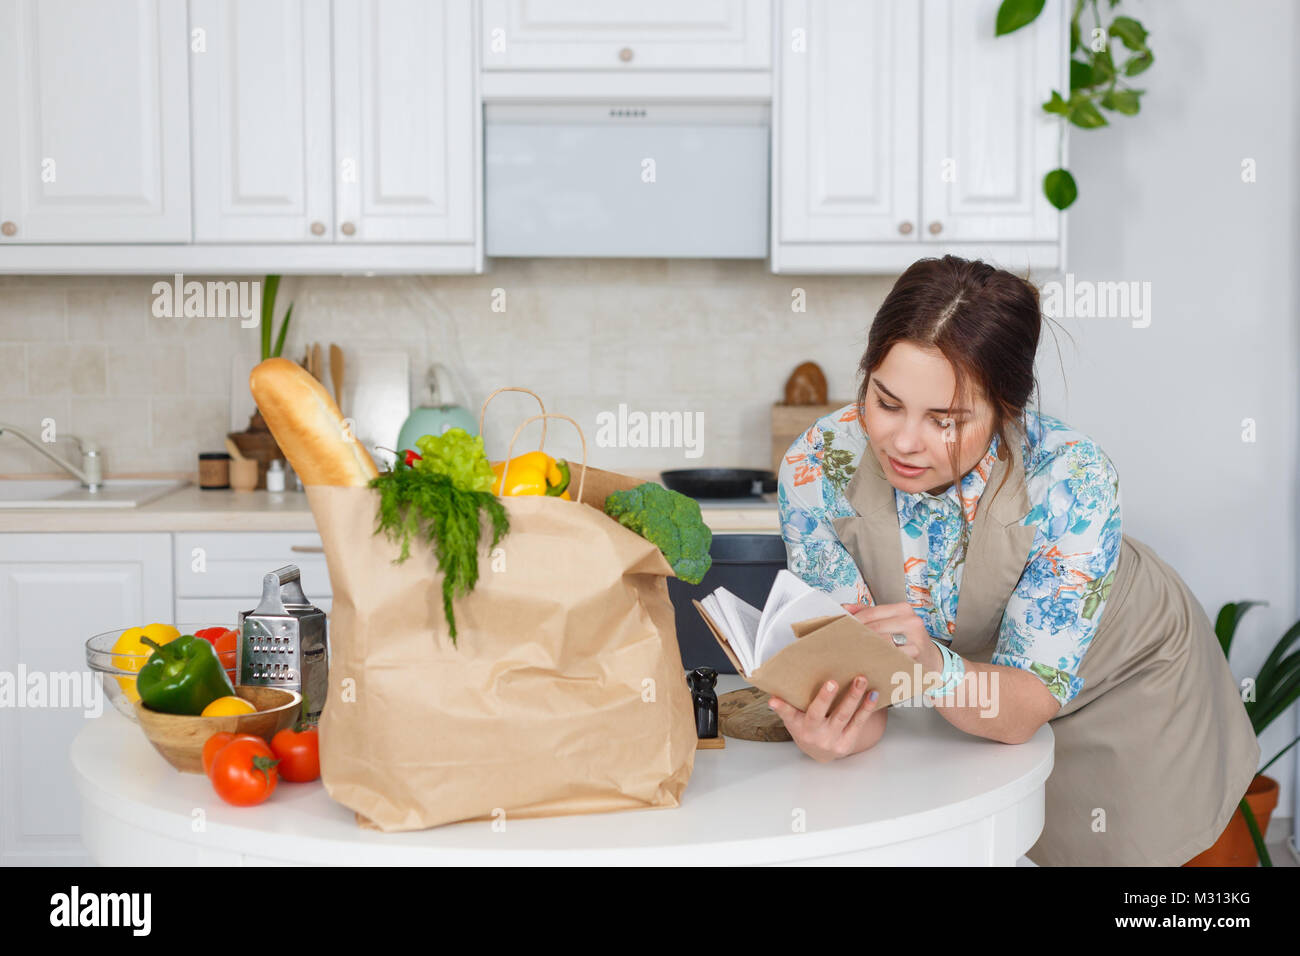 Young housewife with recipes book in the kitchen - Stock Image